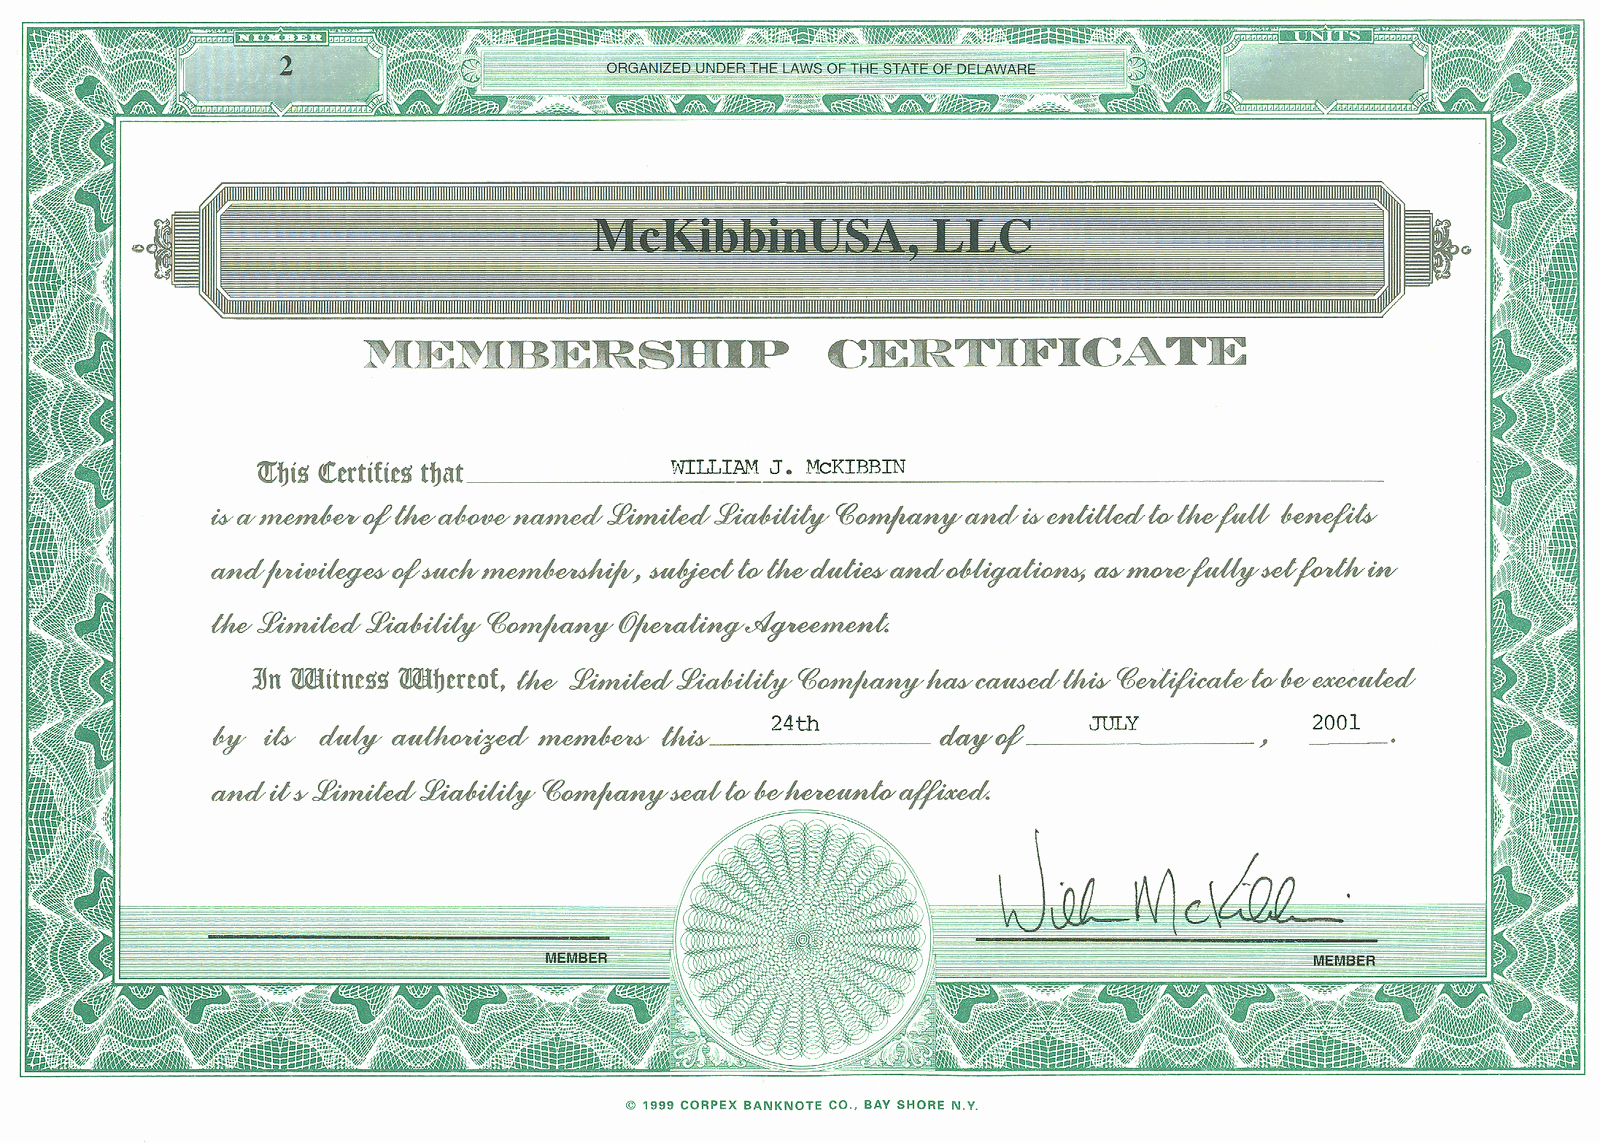 Llc Membership Certificate Template Fresh to Learn More About How I Started My Business Back In 2001